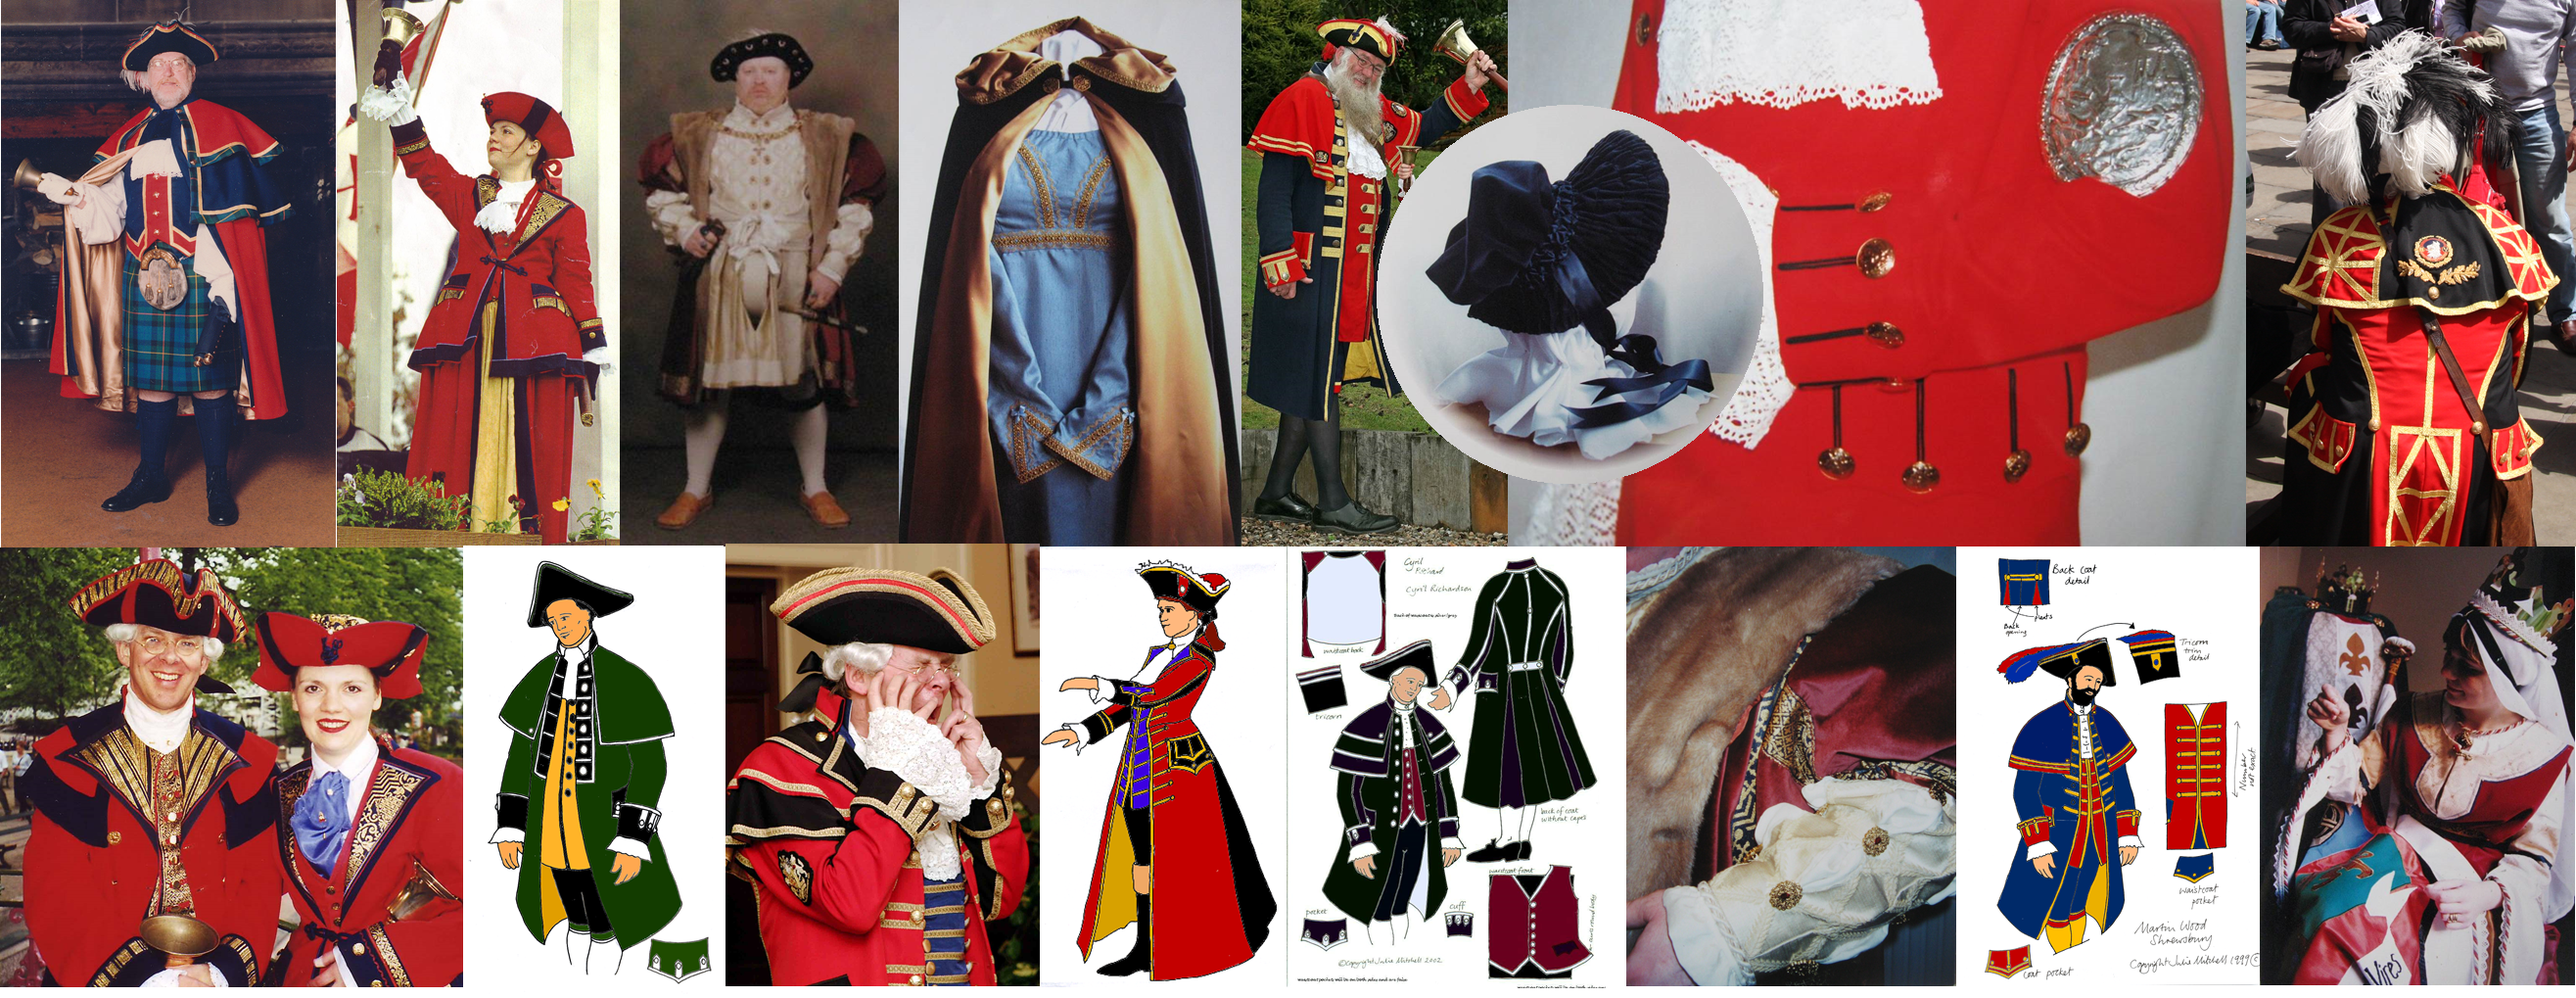 「town crier costume」の画像検索結果